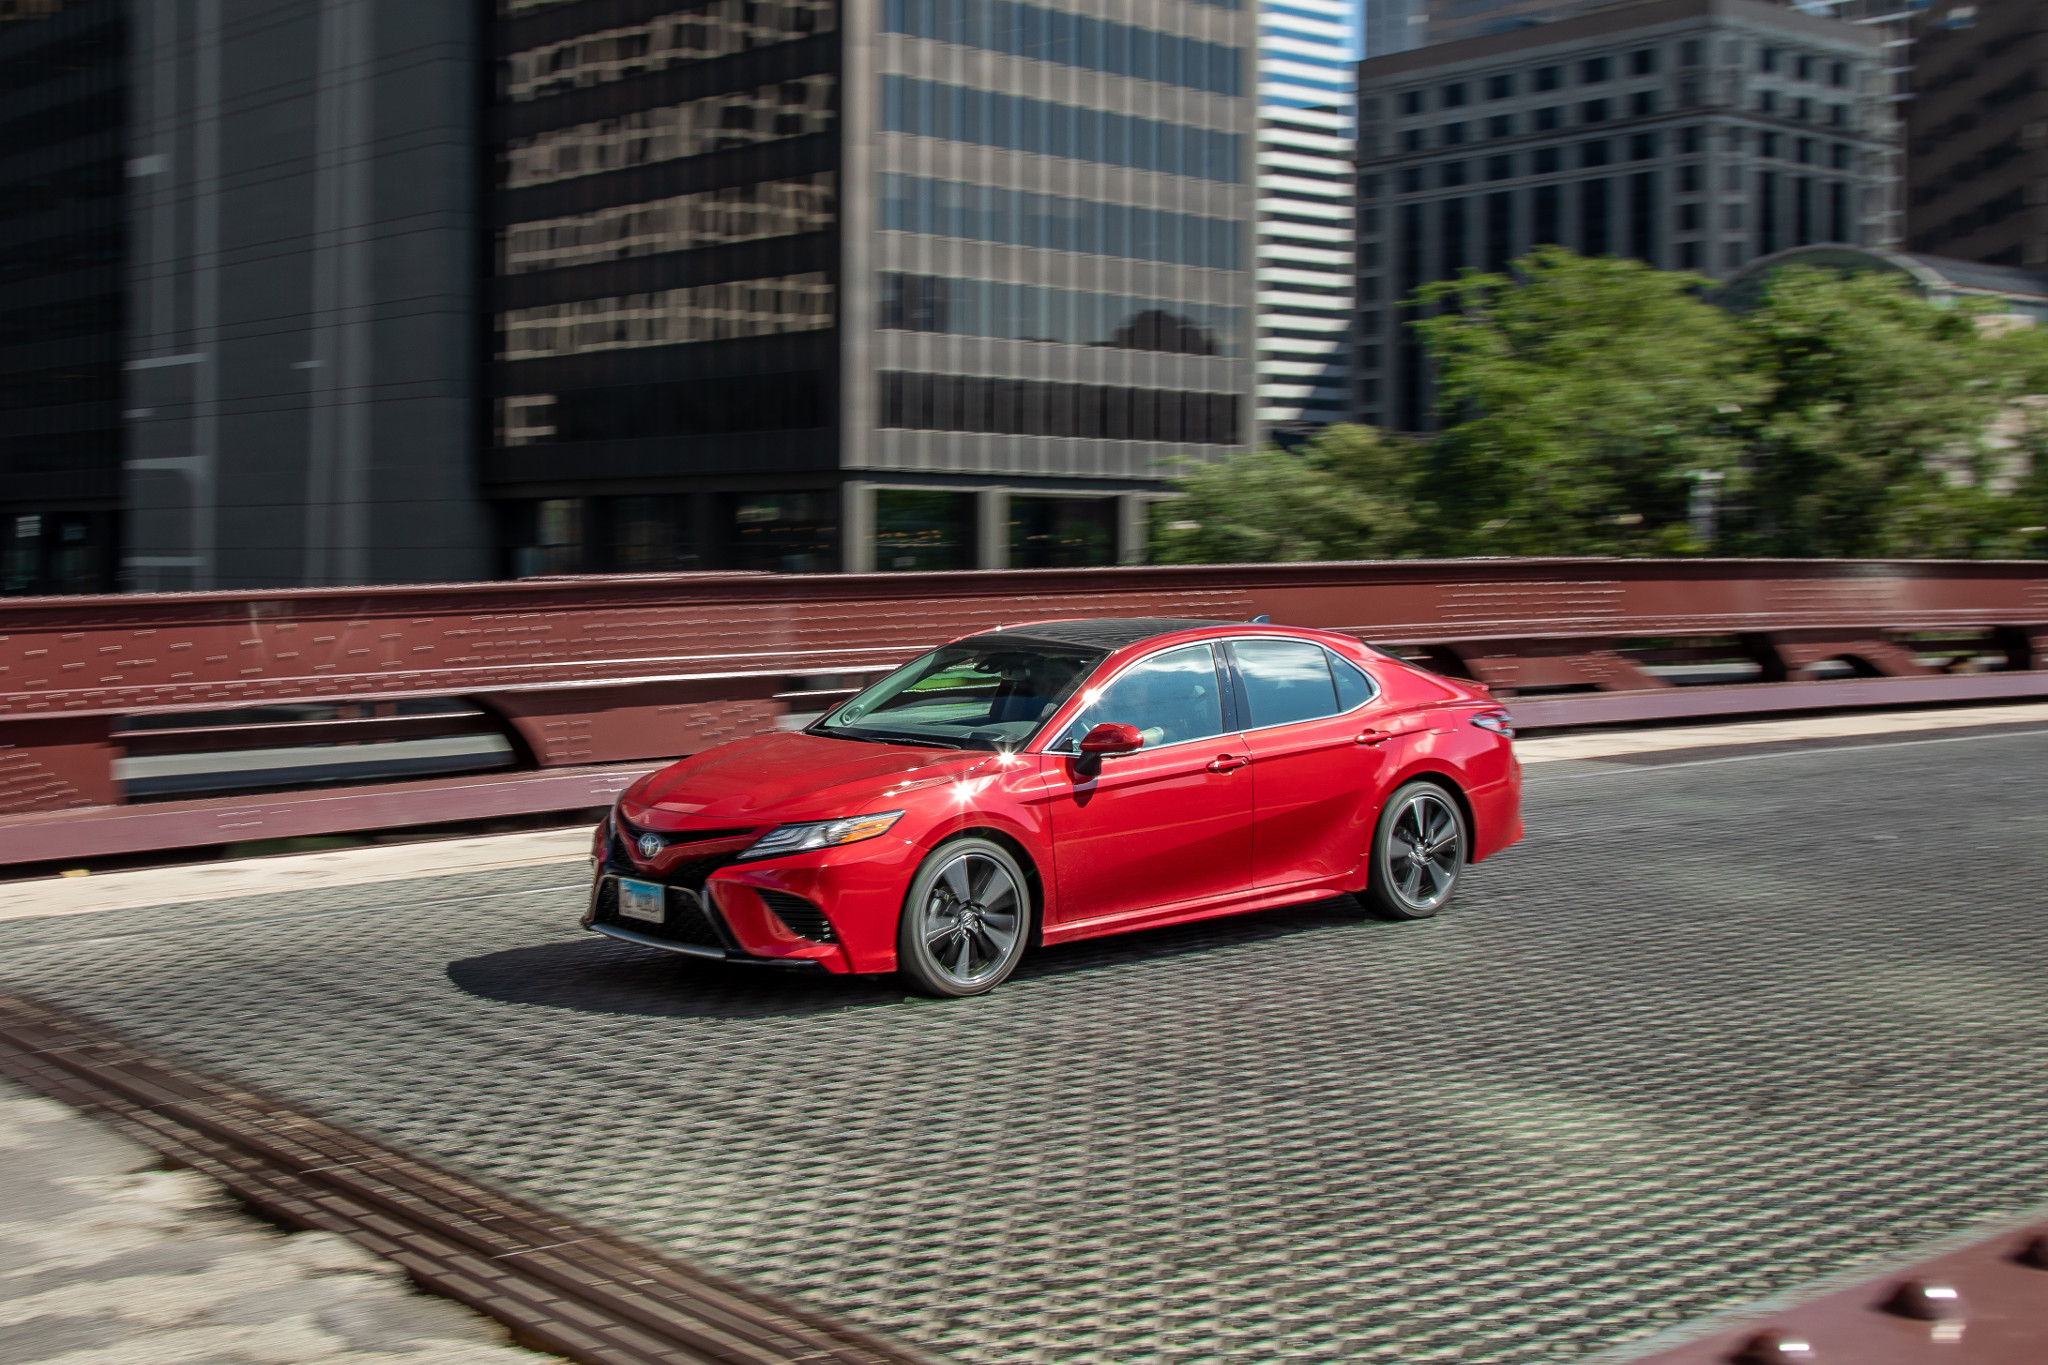 2019 Toyota Camry Review: Short of Great, But Still Good